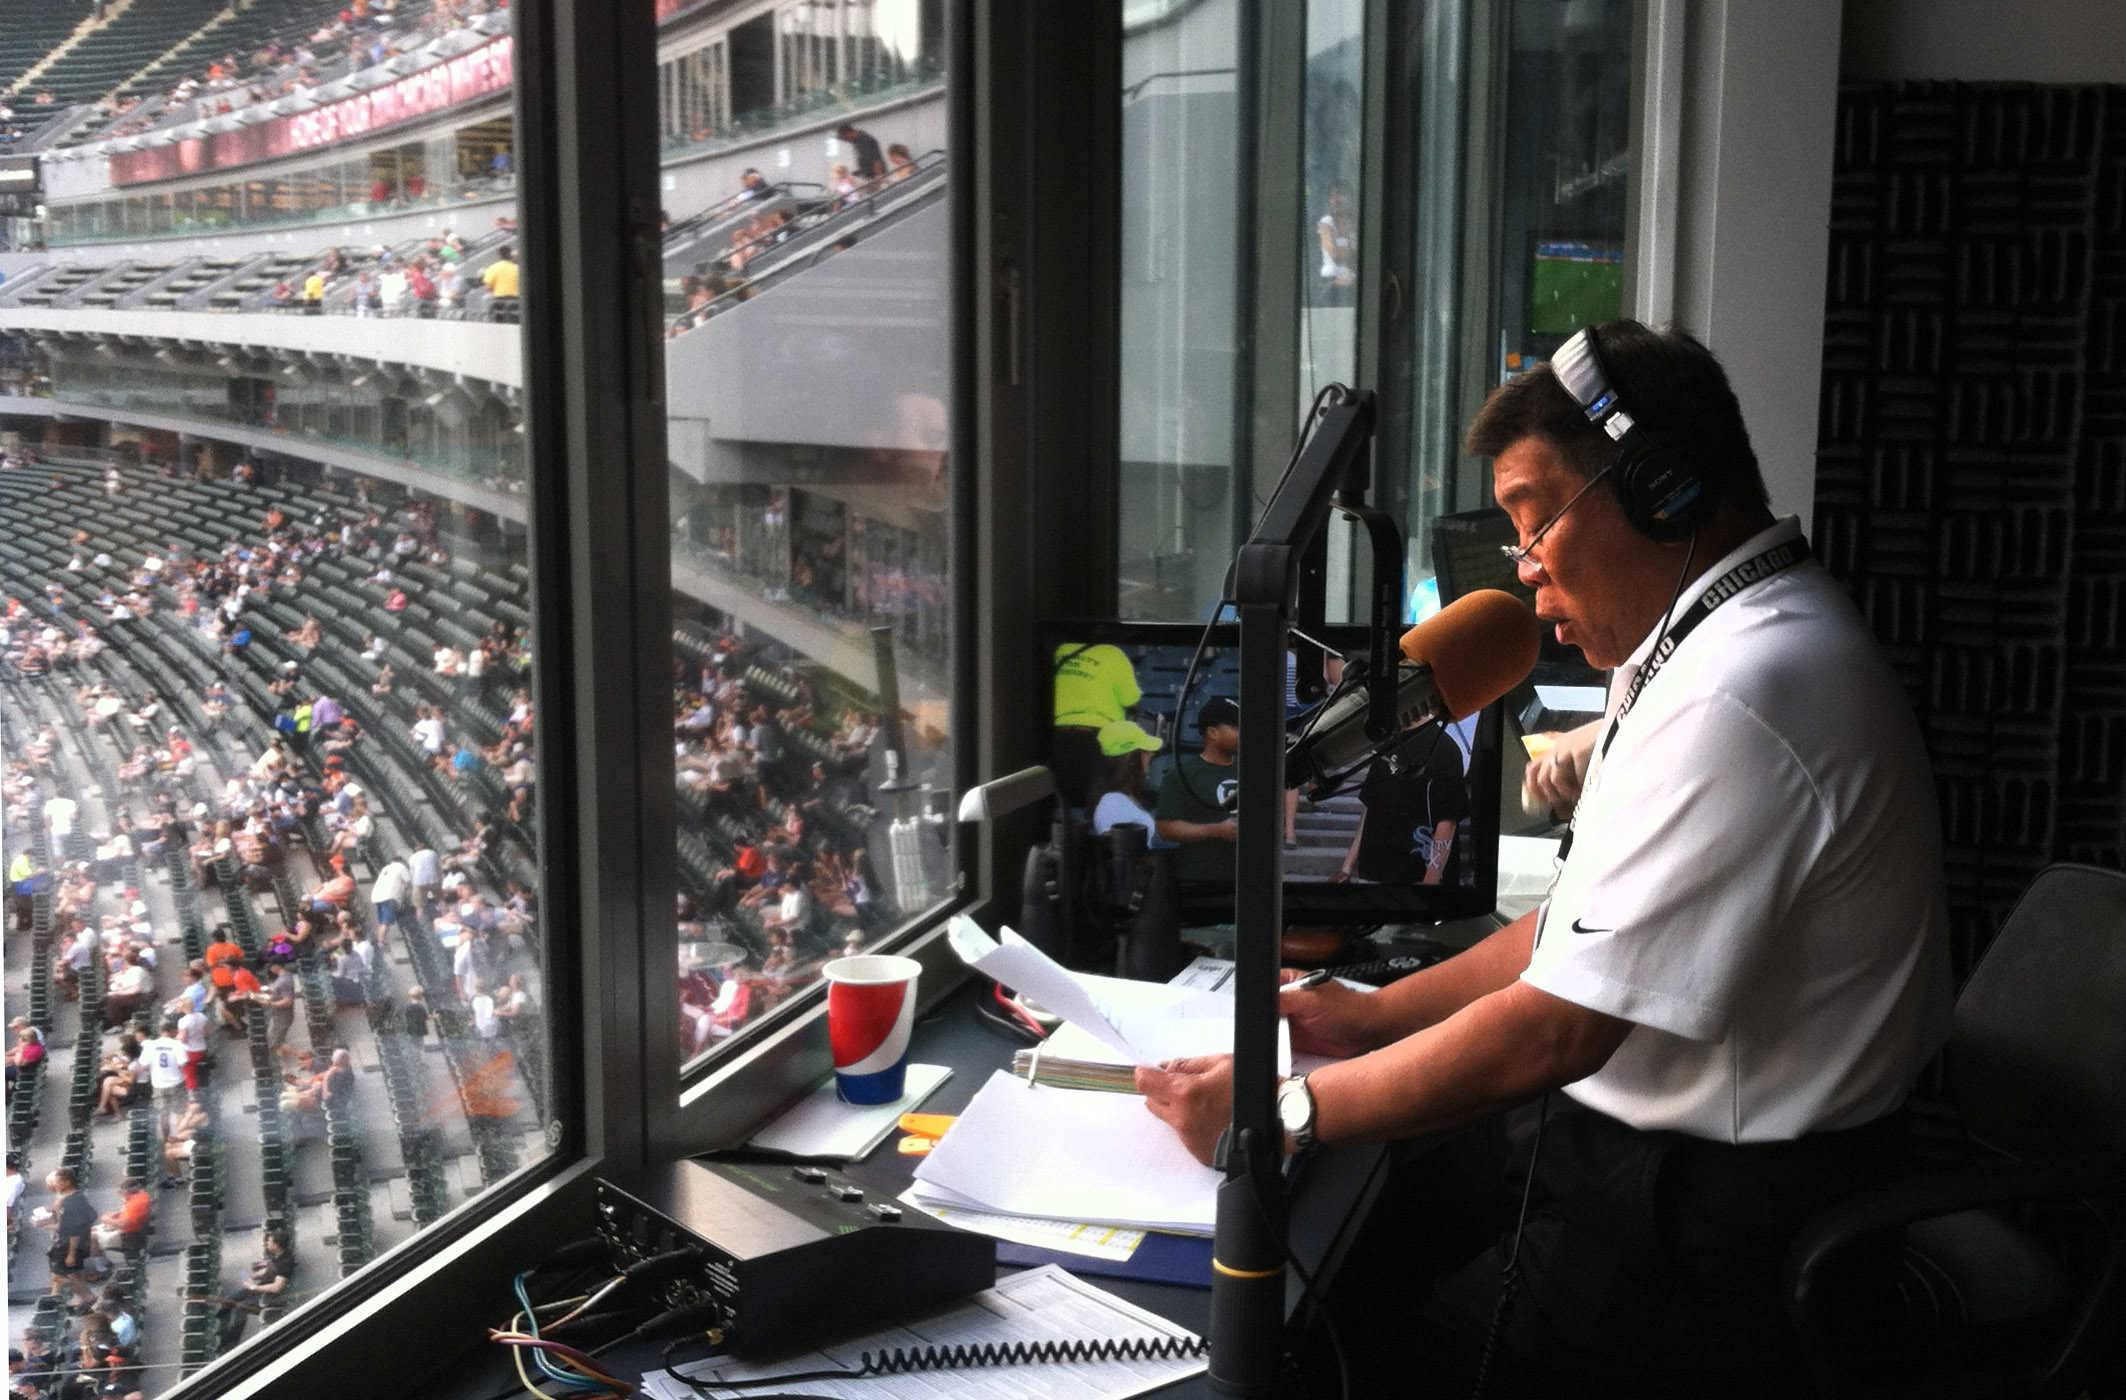 White Sox public address announcer Gene Honda is a familiar fixture at U.S. Cellular Field and many other venues, such as Blackhawks games and the NCAA Final Four.